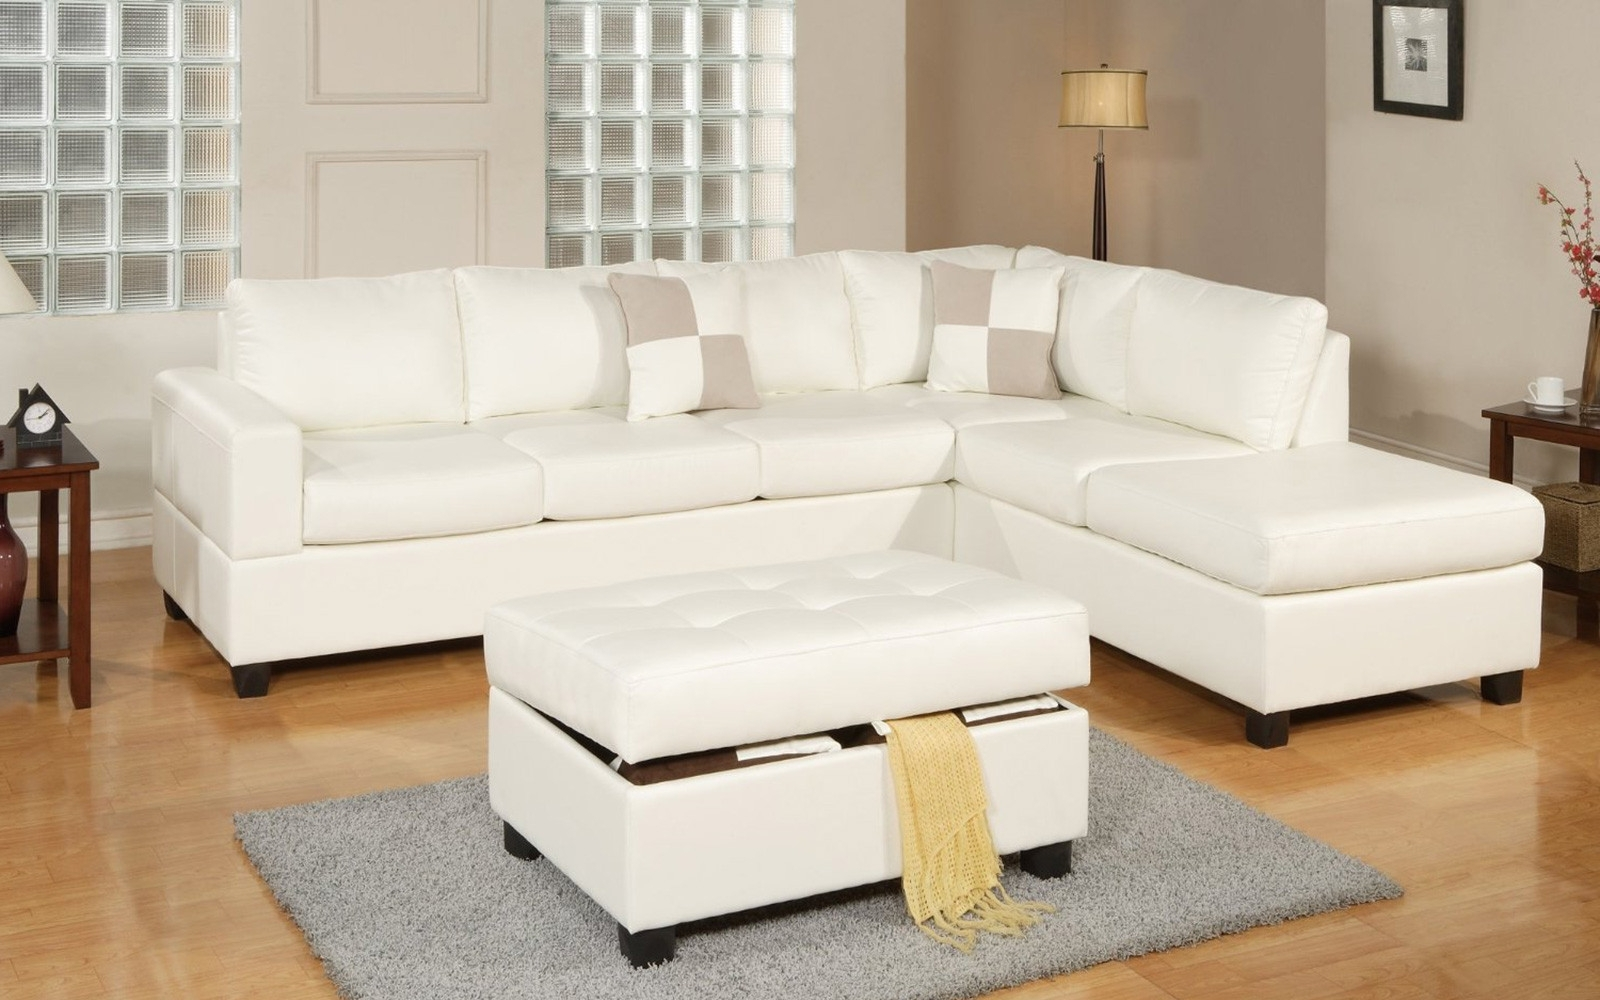 3 Piece Modern Reversible Tufted Bonded Leather Sectional Sofa Regarding Newest White Sectional Sofas With Chaise (View 9 of 15)